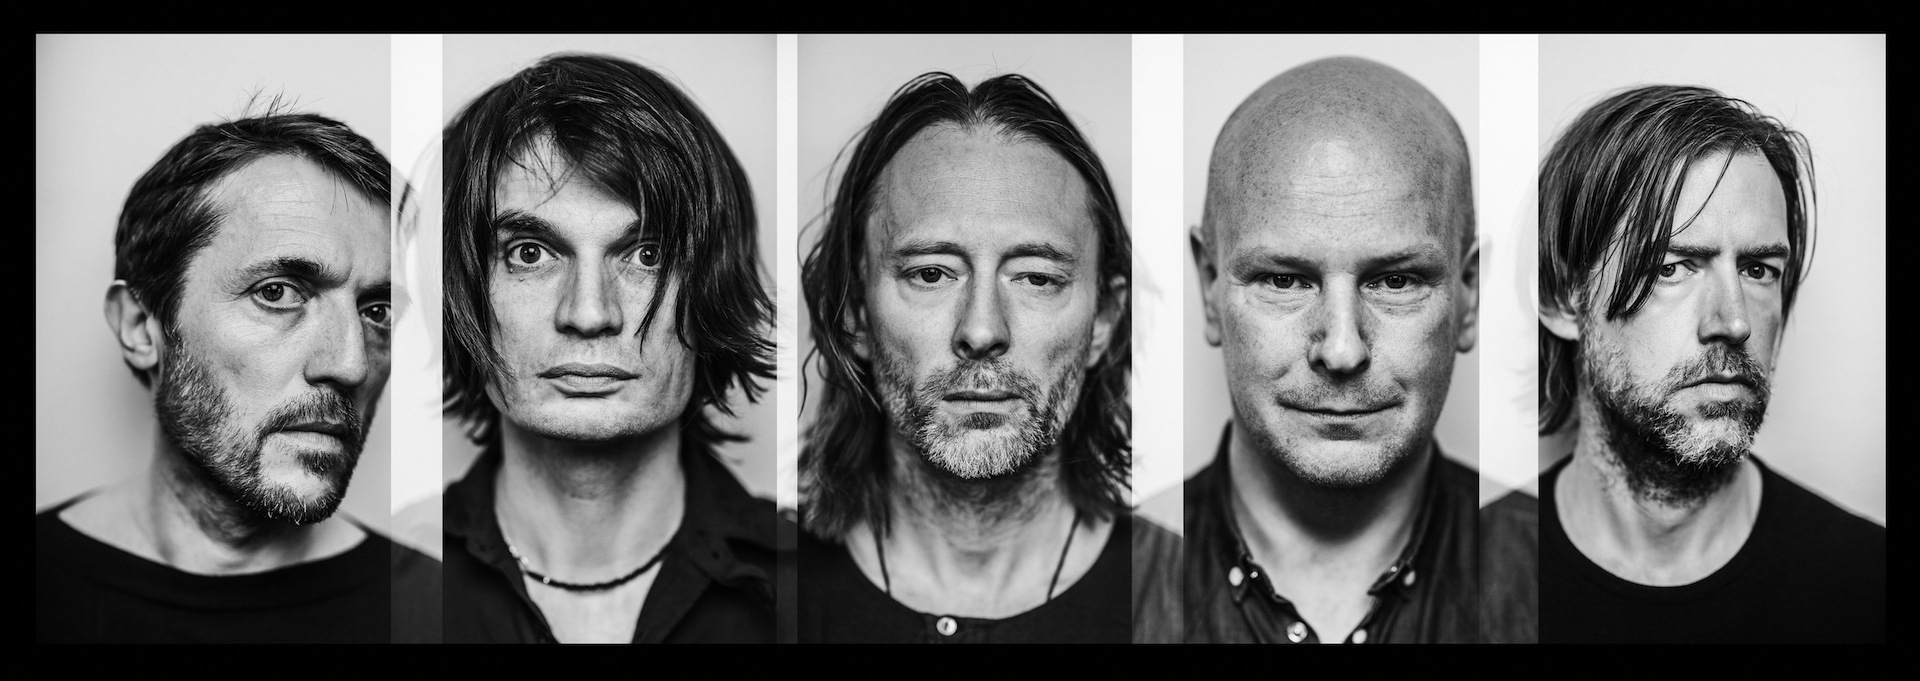 https://ecmreviews.files.wordpress.com/2016/05/radiohead-photo-alex-lake.jpg